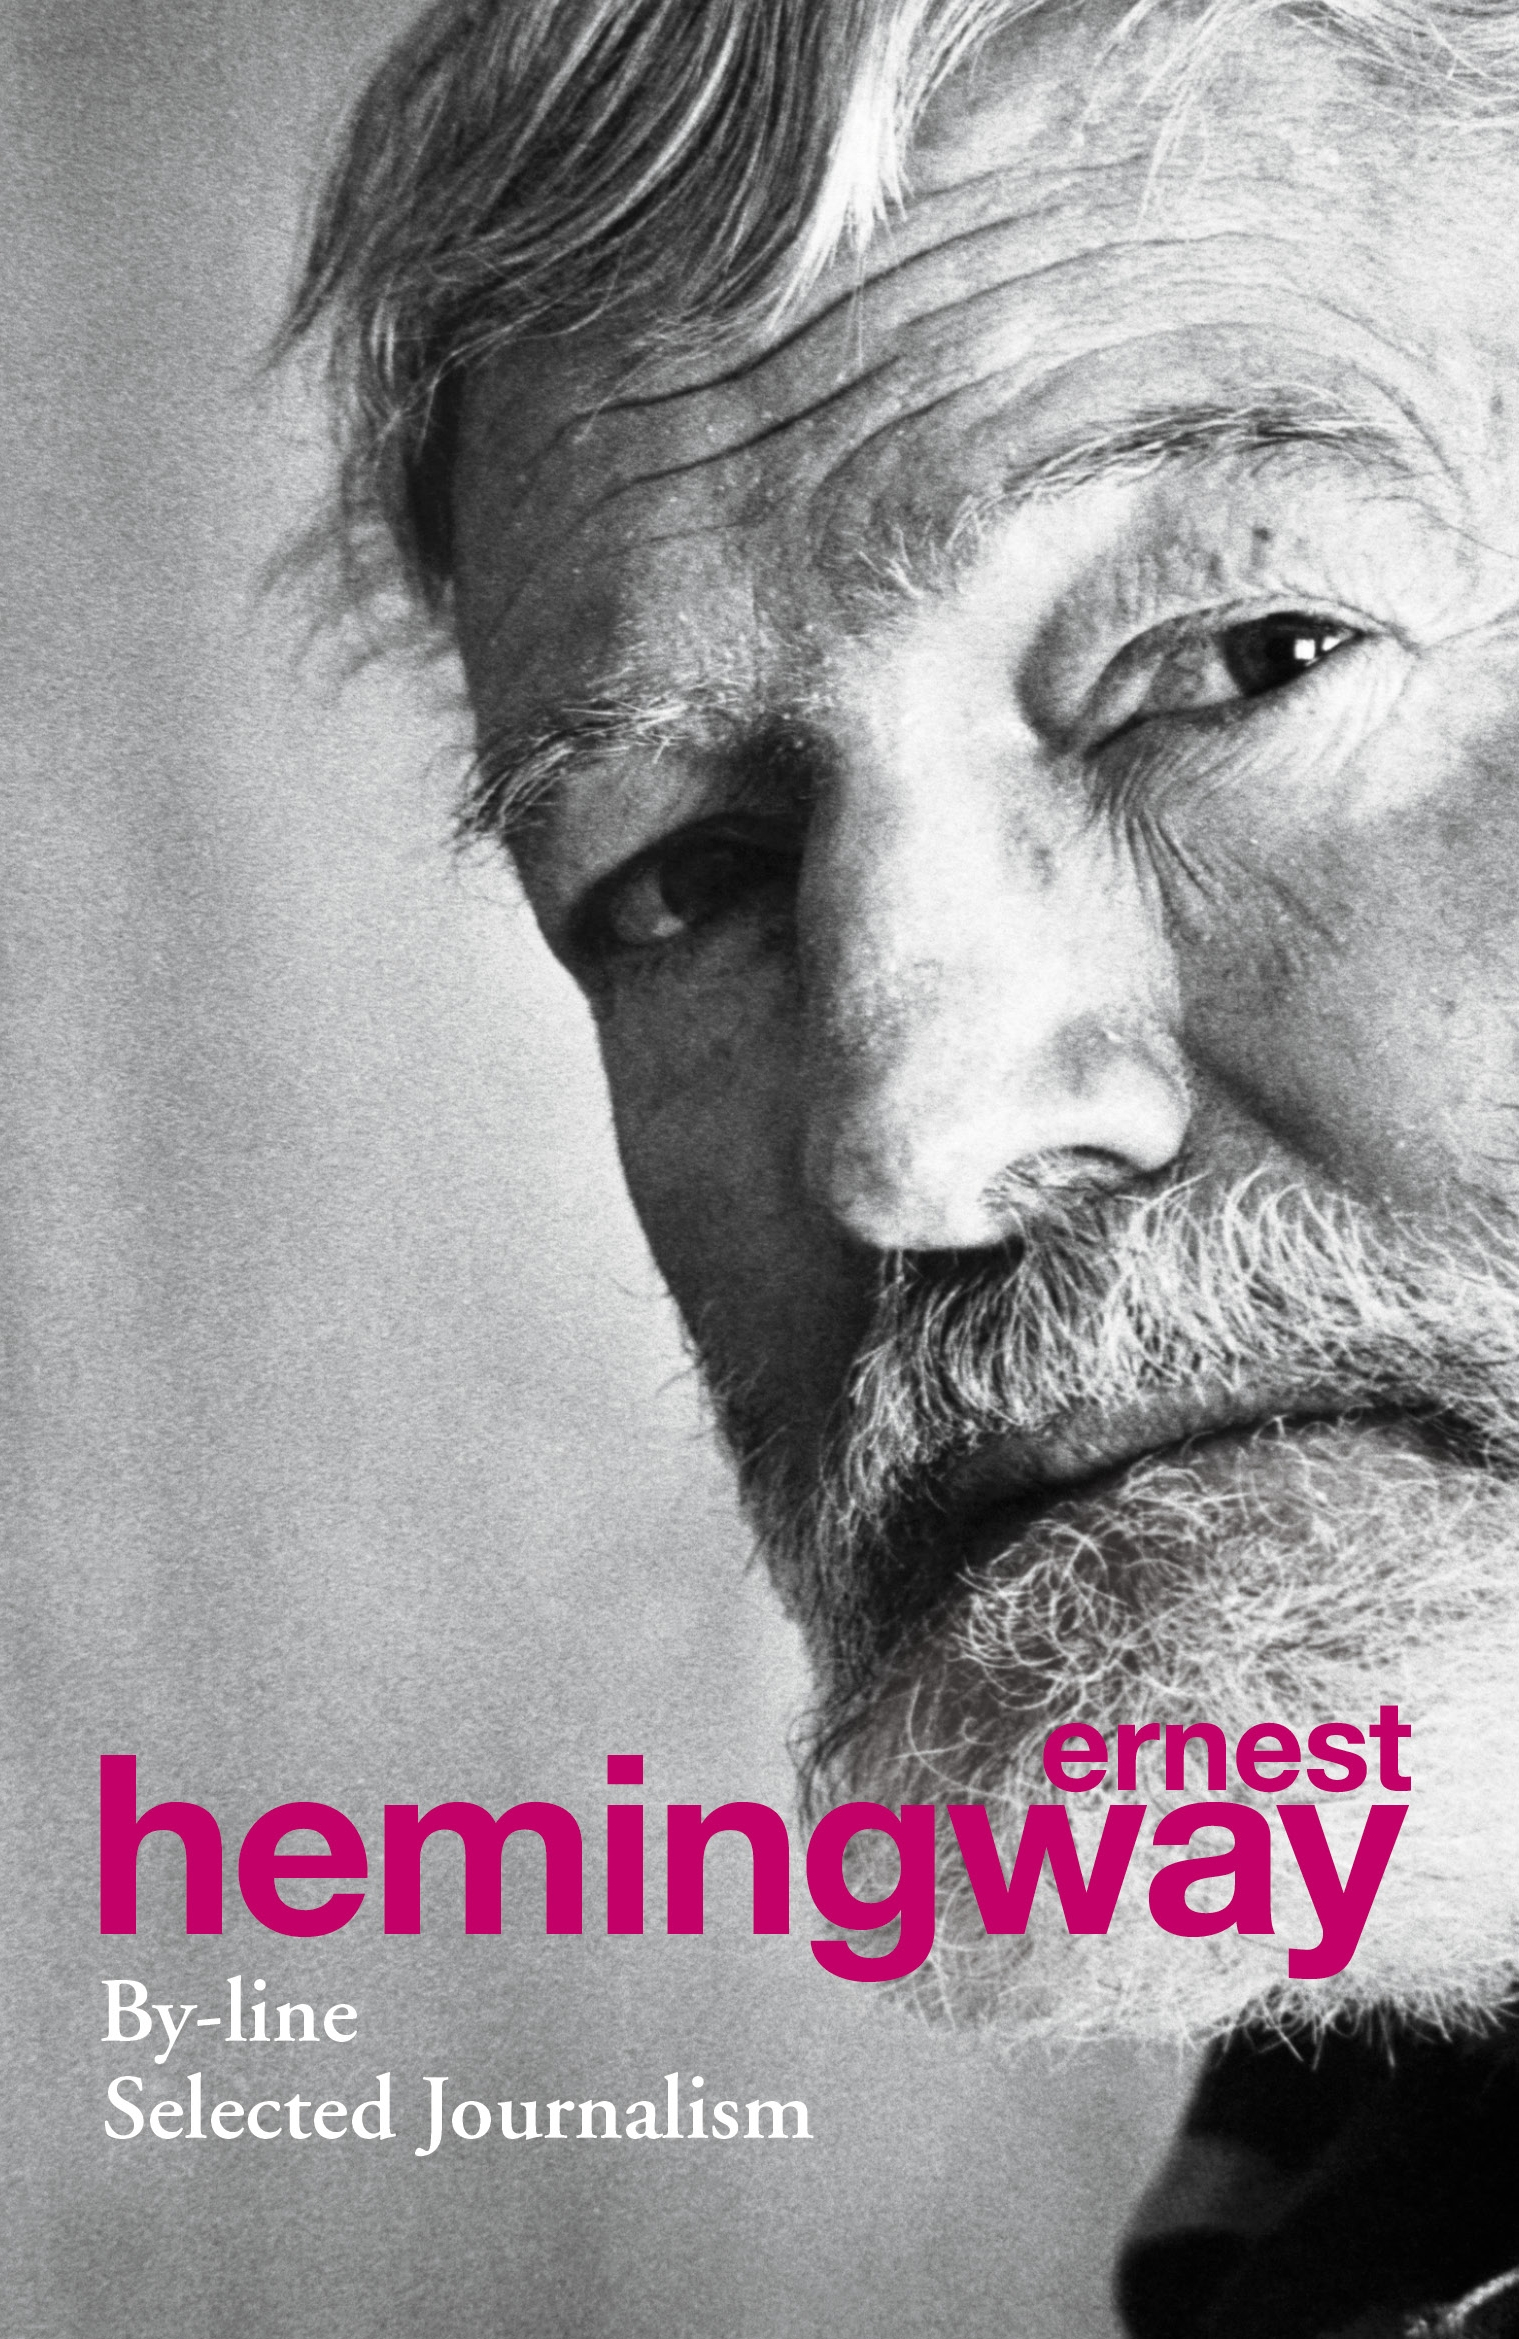 in another place by ernest hemingway essay A farewell to arms is an autobiographical a farewell to arms by ernest hemingway english literature essay it seems she had an hemorrhage after another.